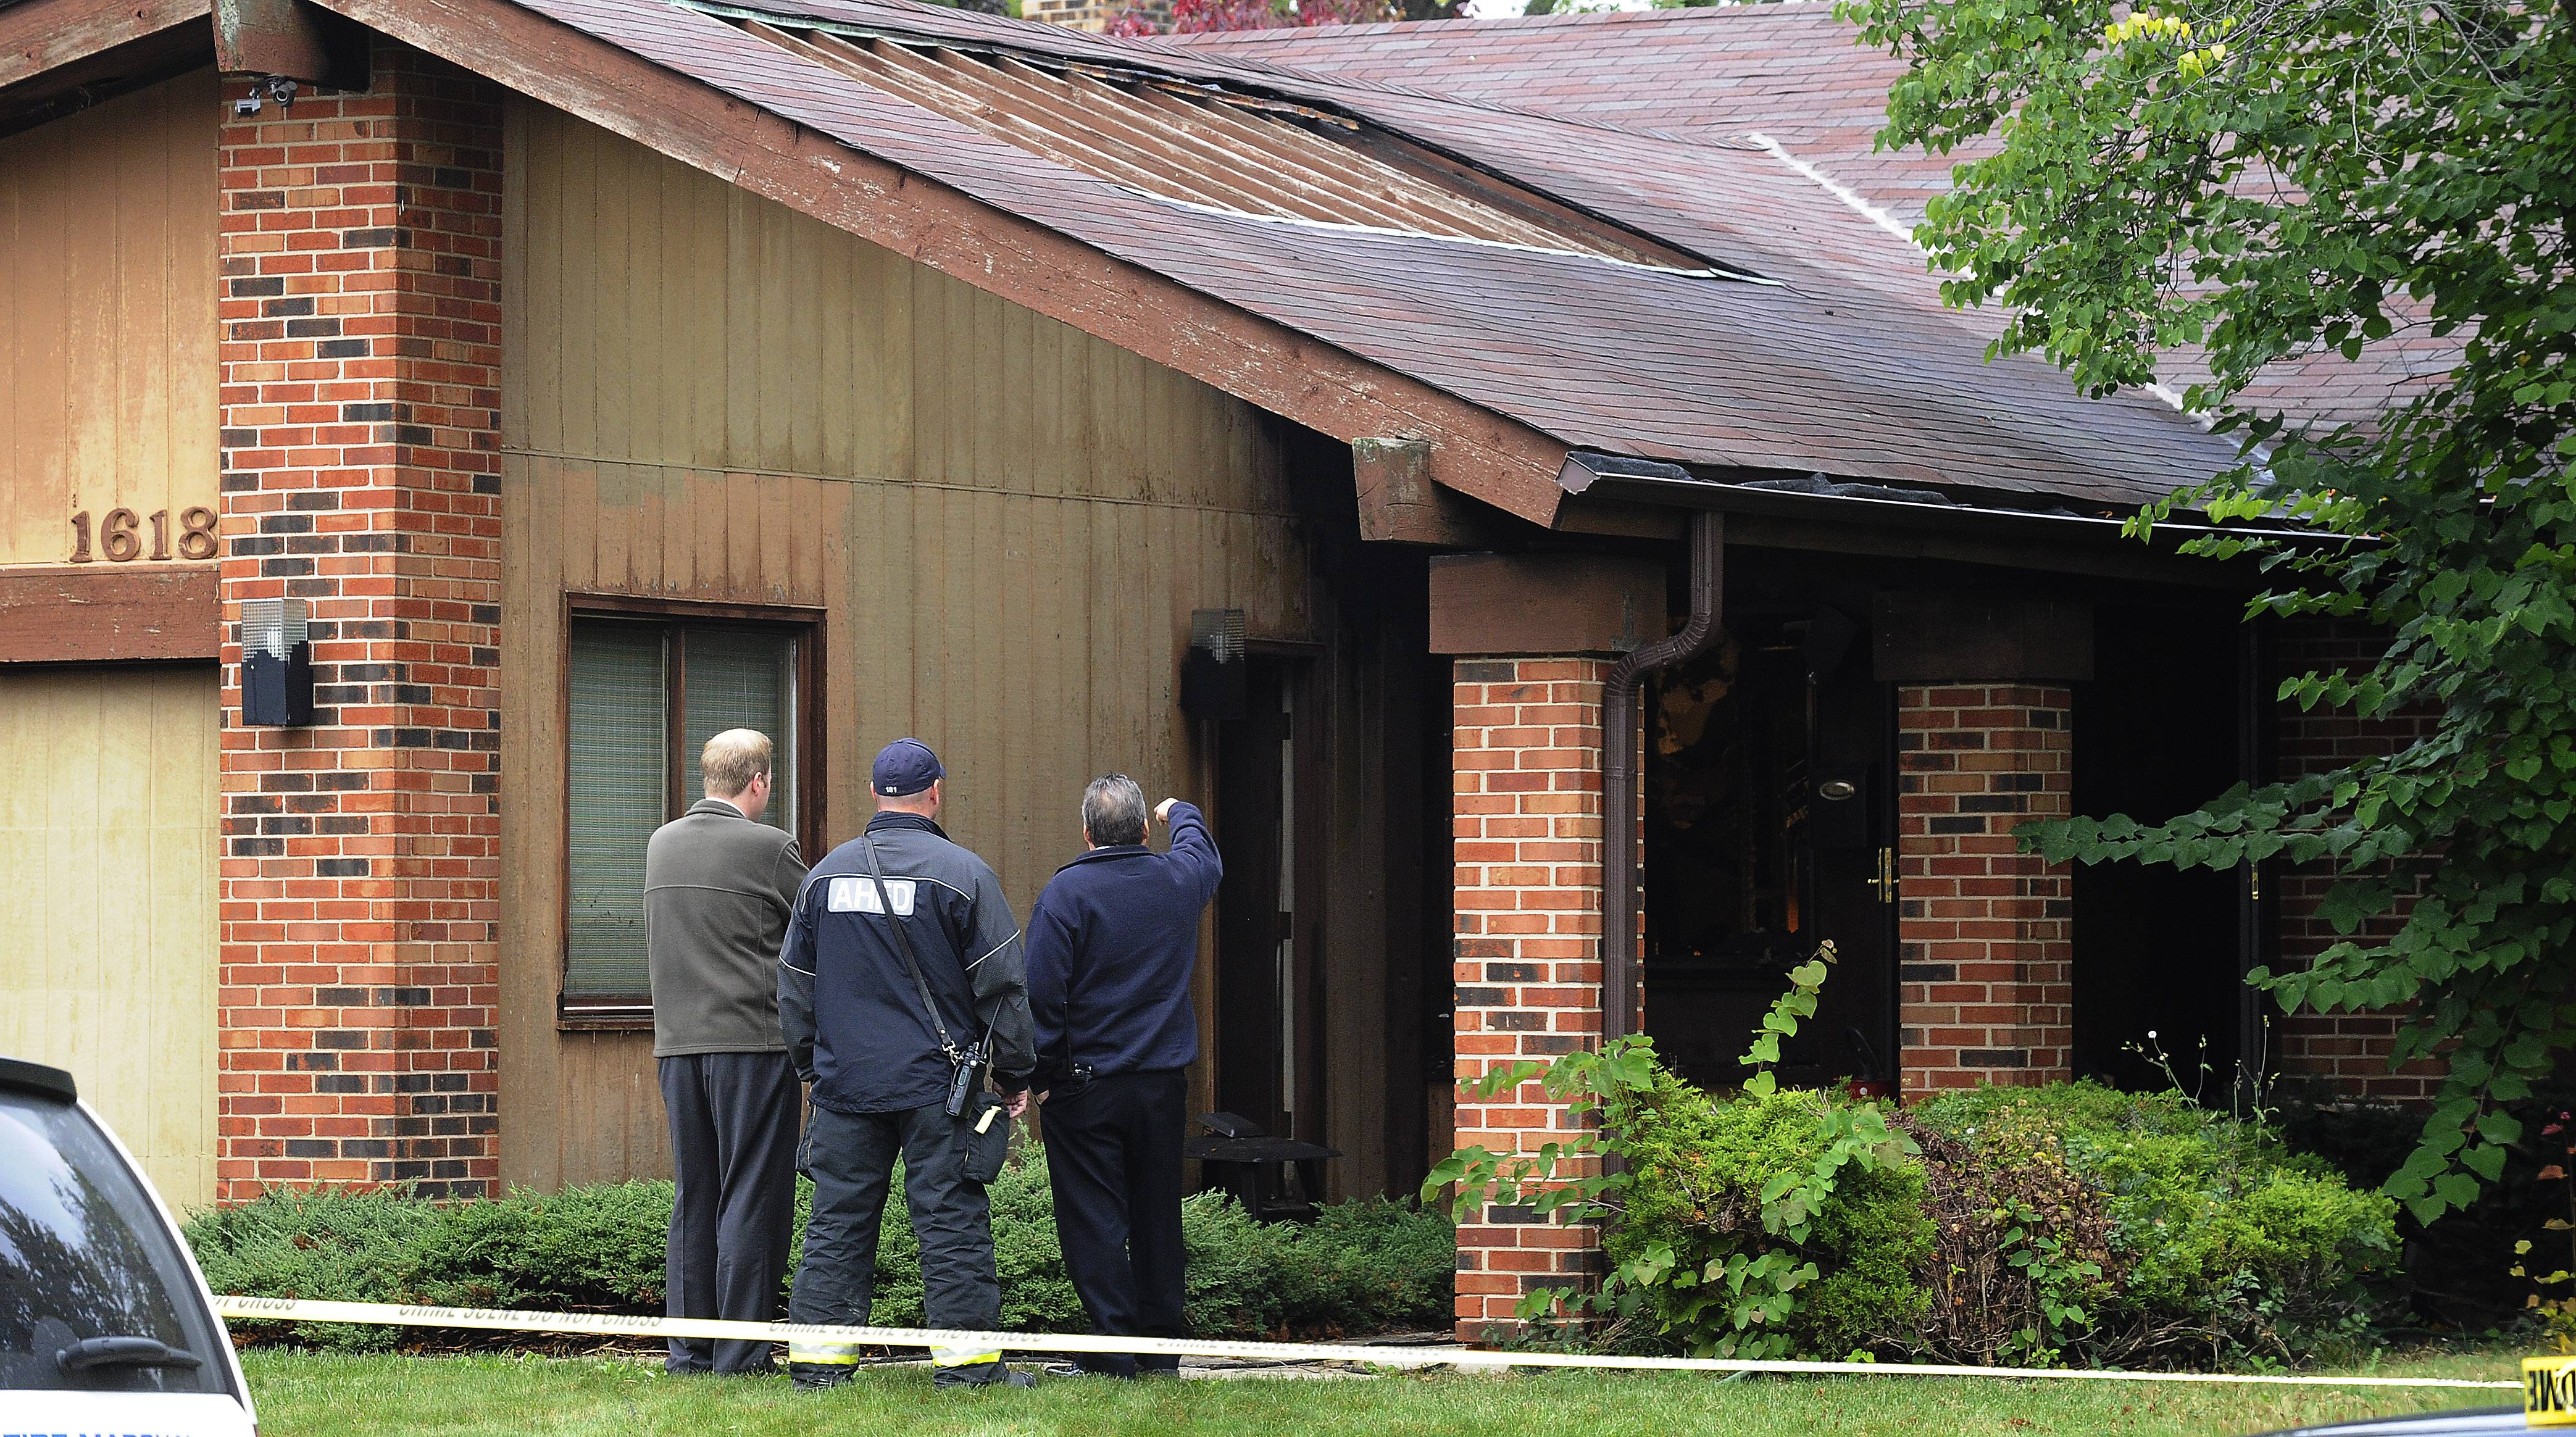 Fire officials at the scene of the fatal house fire in the 1600 block of Waverly in Arlington Heights.